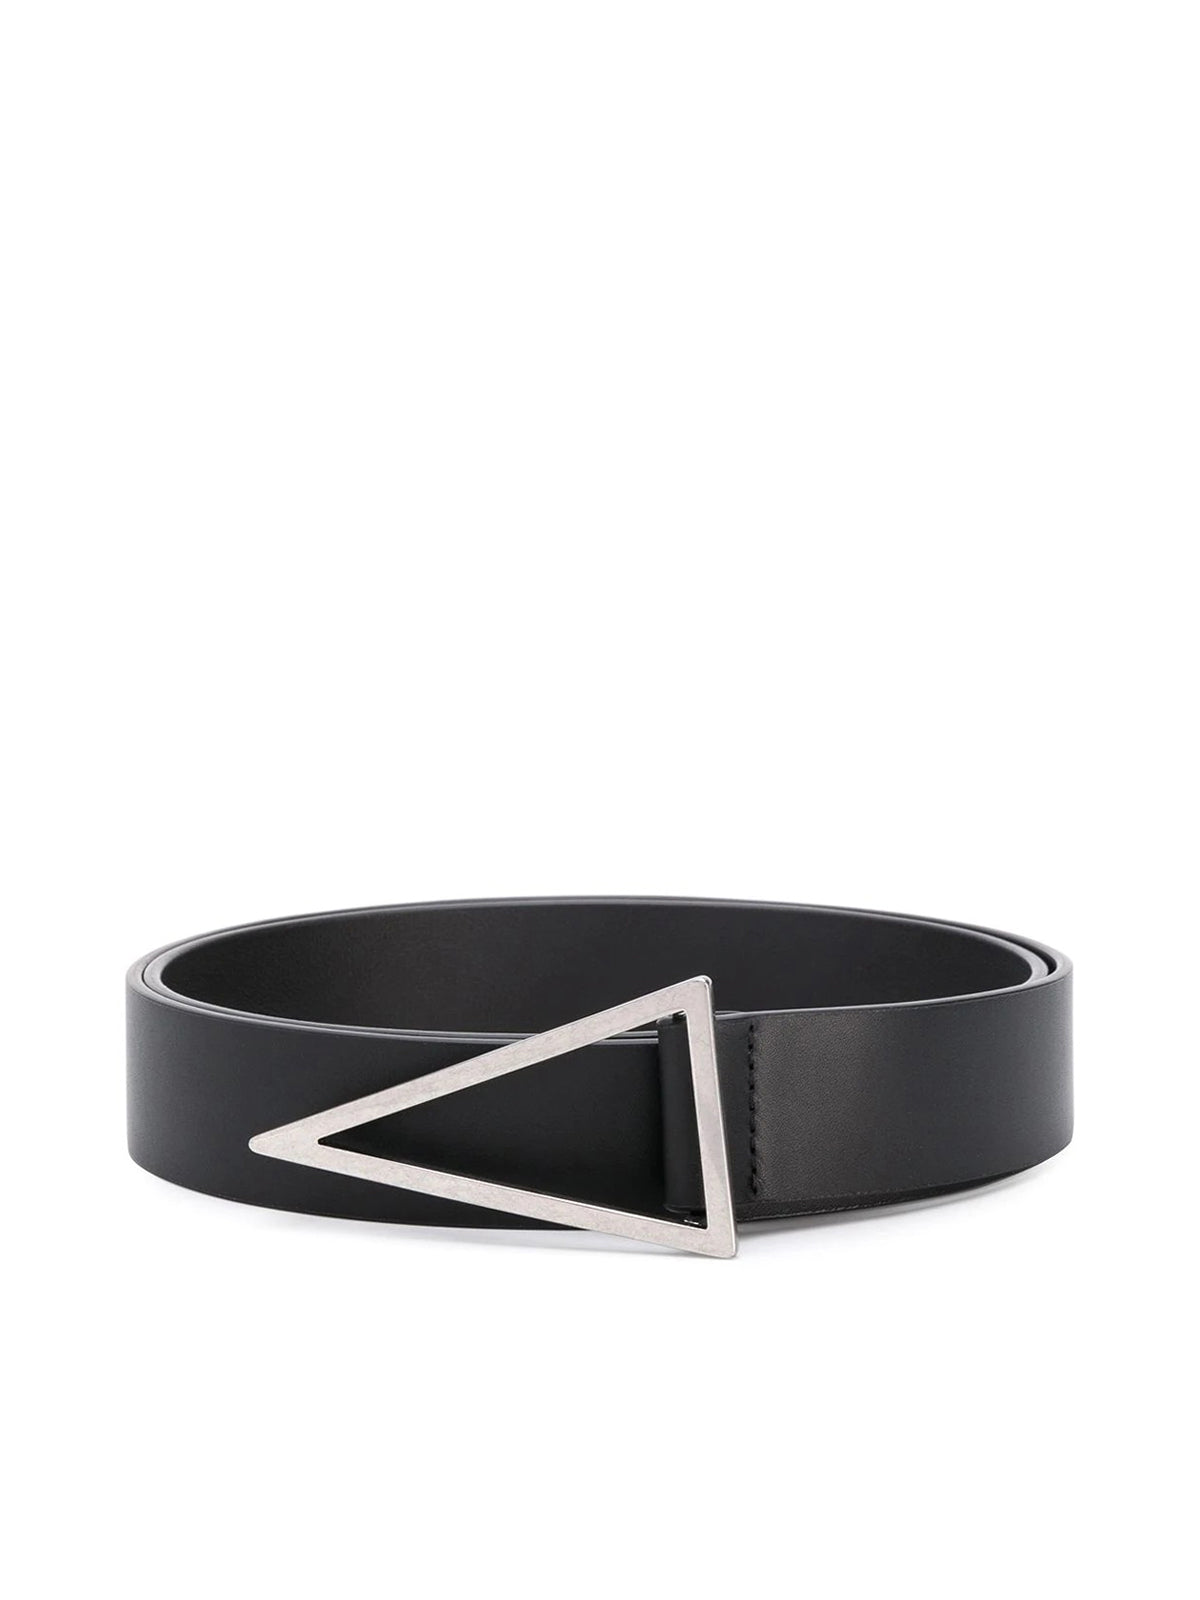 triangular buckle leather belt